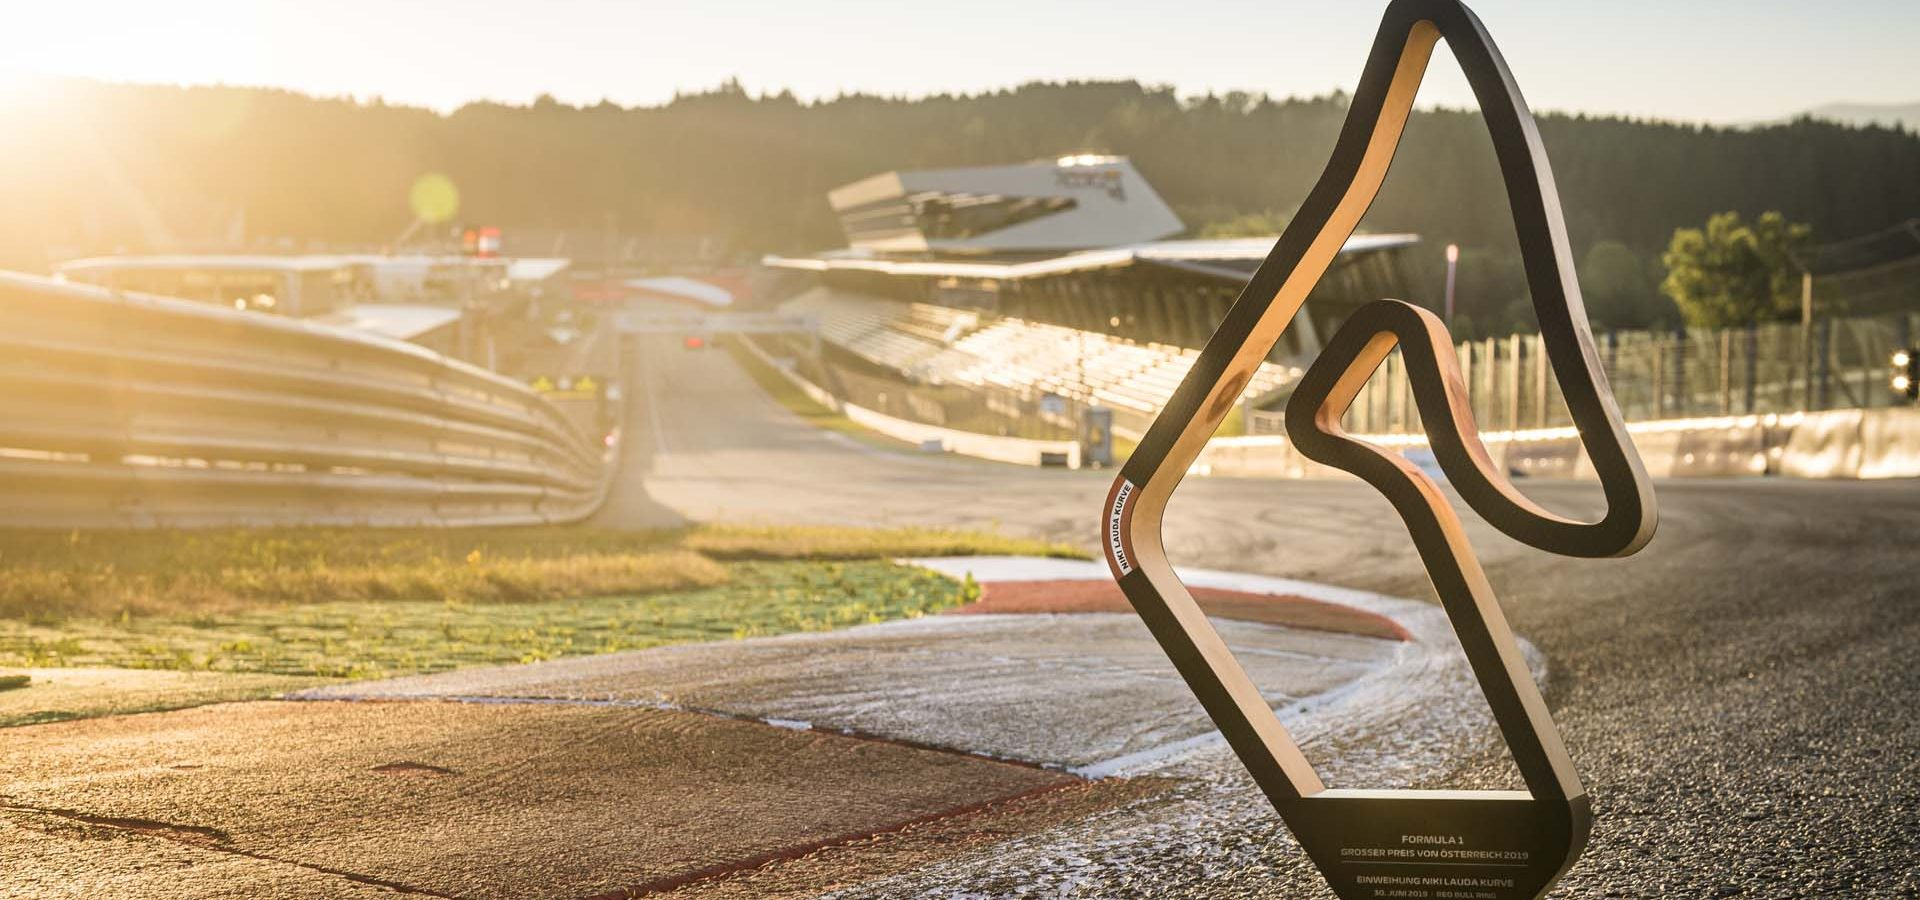 The Niki Lauda Trophy seen at the new Niki Lauda Corner during the FIA Formula One World Championship 2019 in Spielberg, Austria on June 29, 2019 // Philip Platzer/Red Bull Content Pool // AP-1ZT6KZ4KH1W11 // Usage for editorial use only // Please go to www.redbullcontentpool.com for further information. //